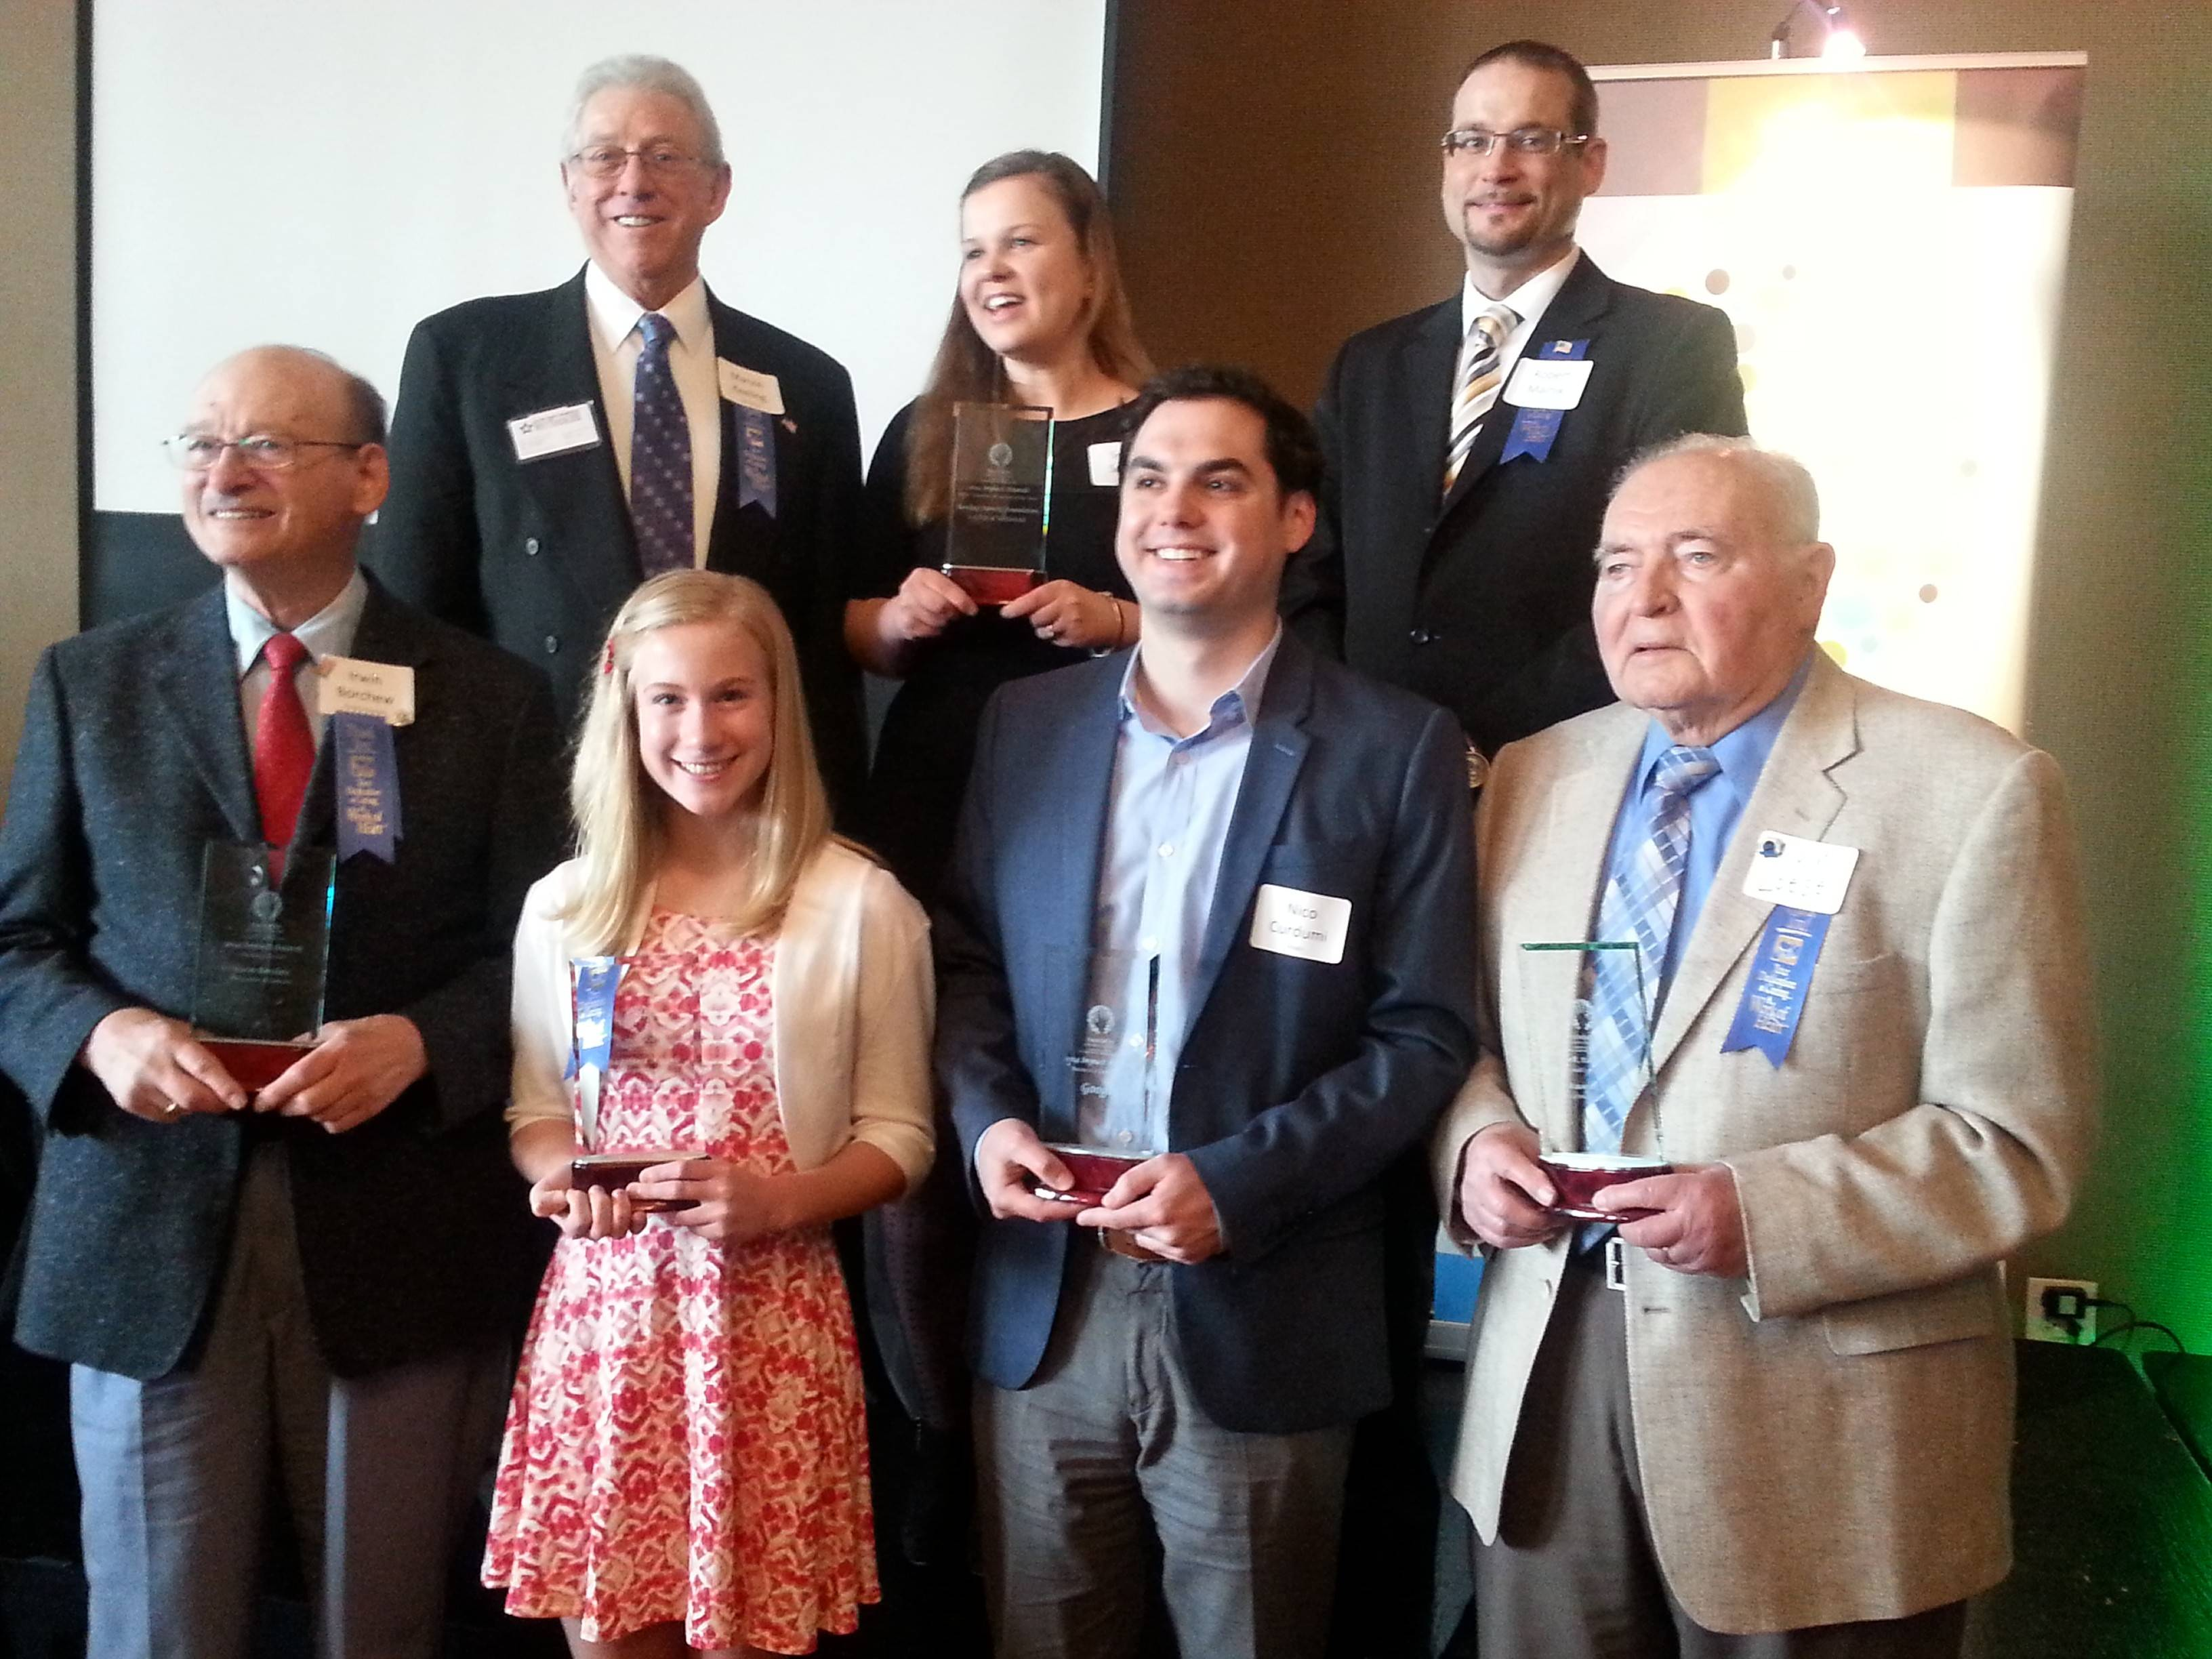 Winners of the 2014 Impact Awards are, back row, from left, Marvin Keeling, Sylvia Smaga and Rob Malnik. Front row, from left, Irwin Borchew, Jess Streepy, Nico Curdumi, Al Loesel. Not pictured: Lori Nowacki.